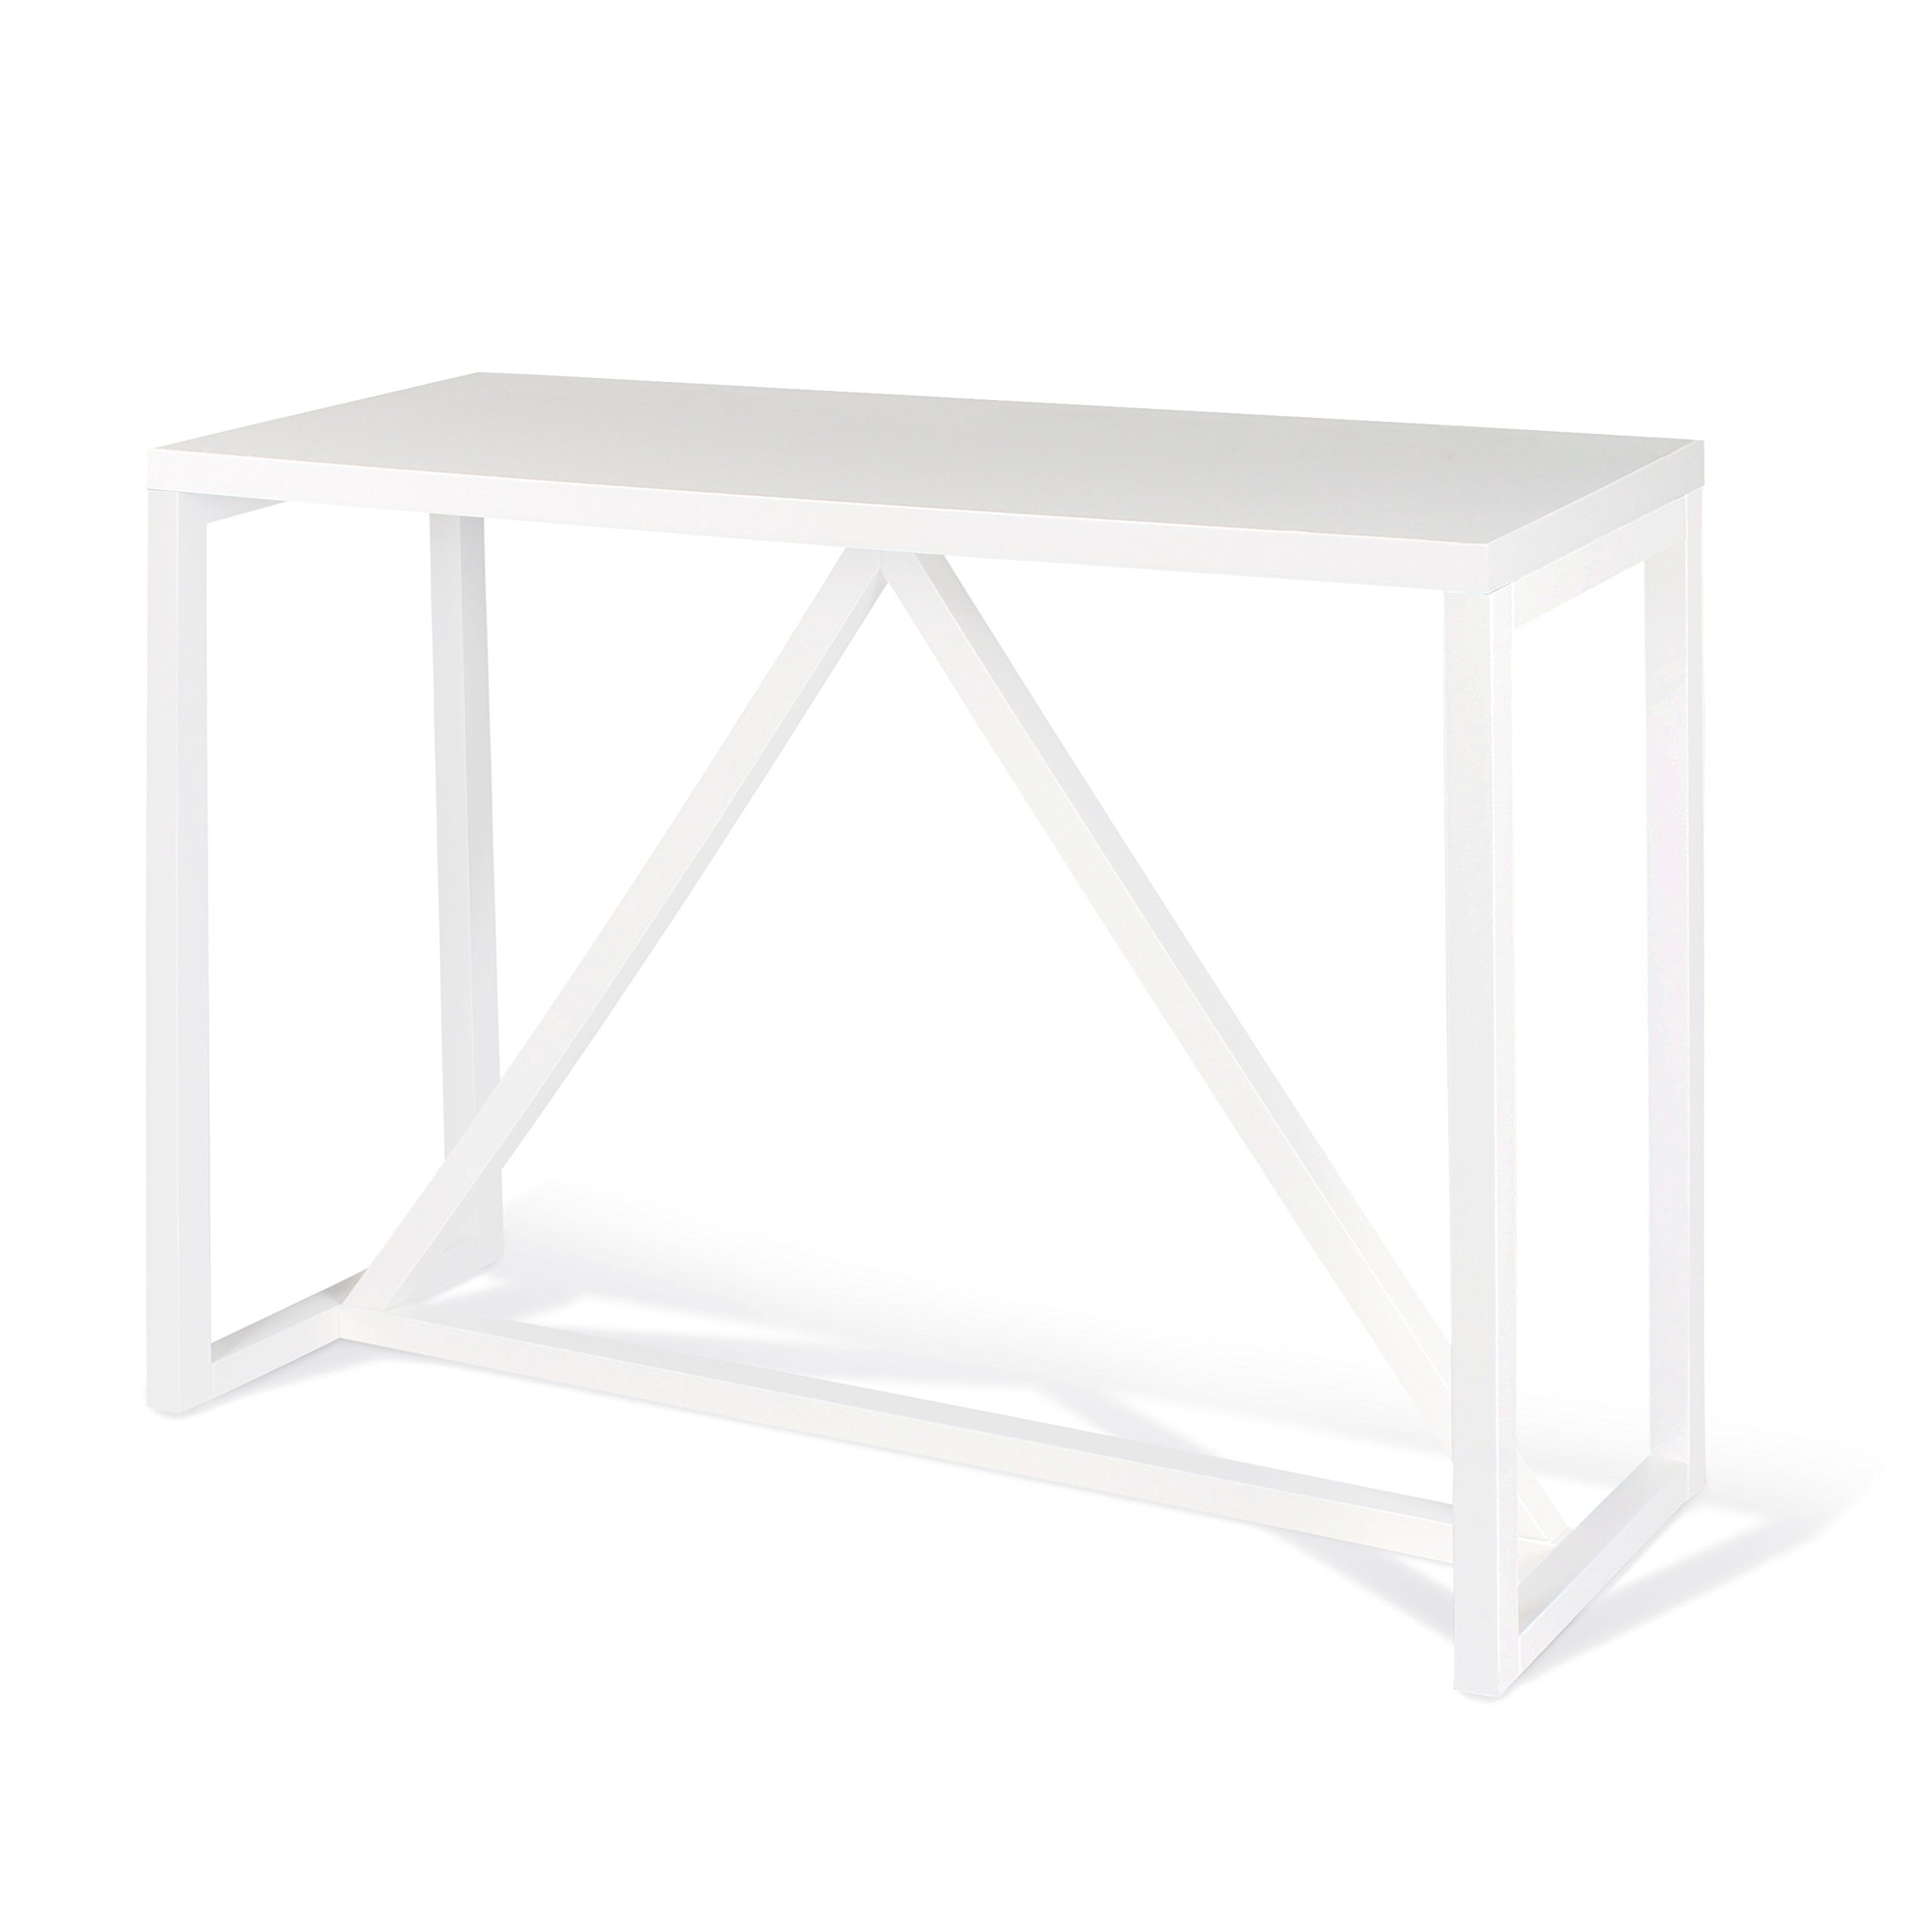 Kate and Laurel Kaya Wood Console Table, White by Kate and Laurel